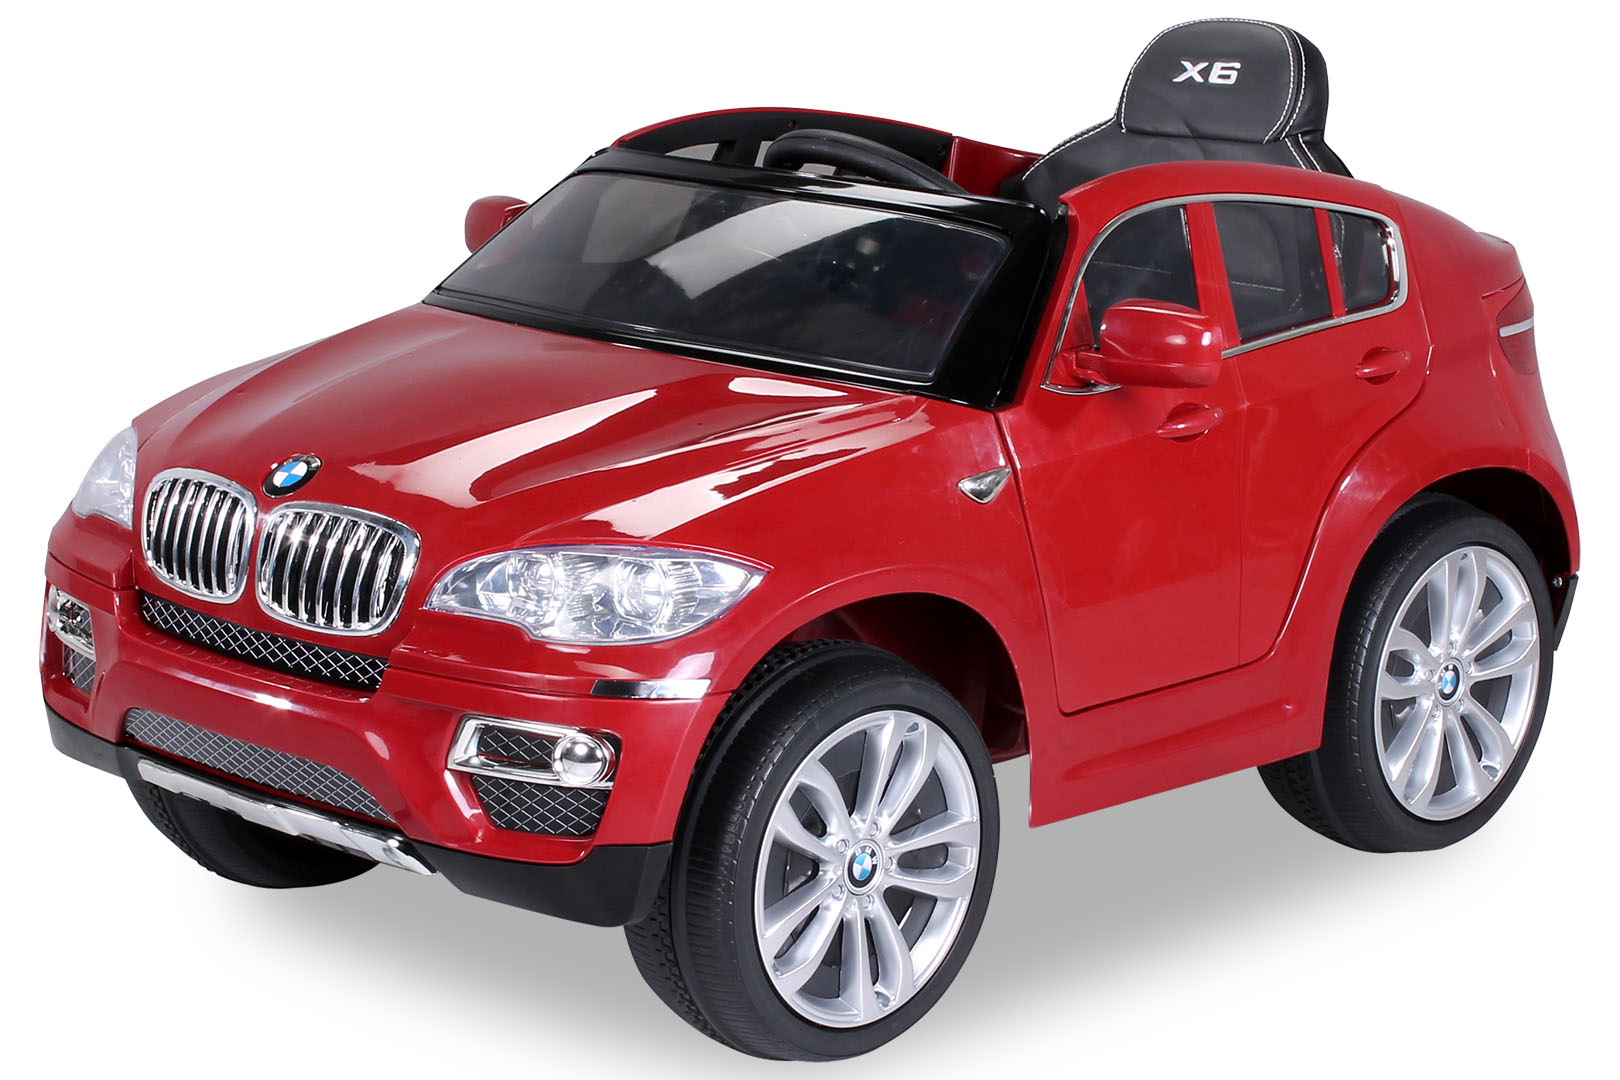 elektroauto bmw x6 suv kinderauto elektrofahrzeug kinder elektro auto spielzeug ebay. Black Bedroom Furniture Sets. Home Design Ideas